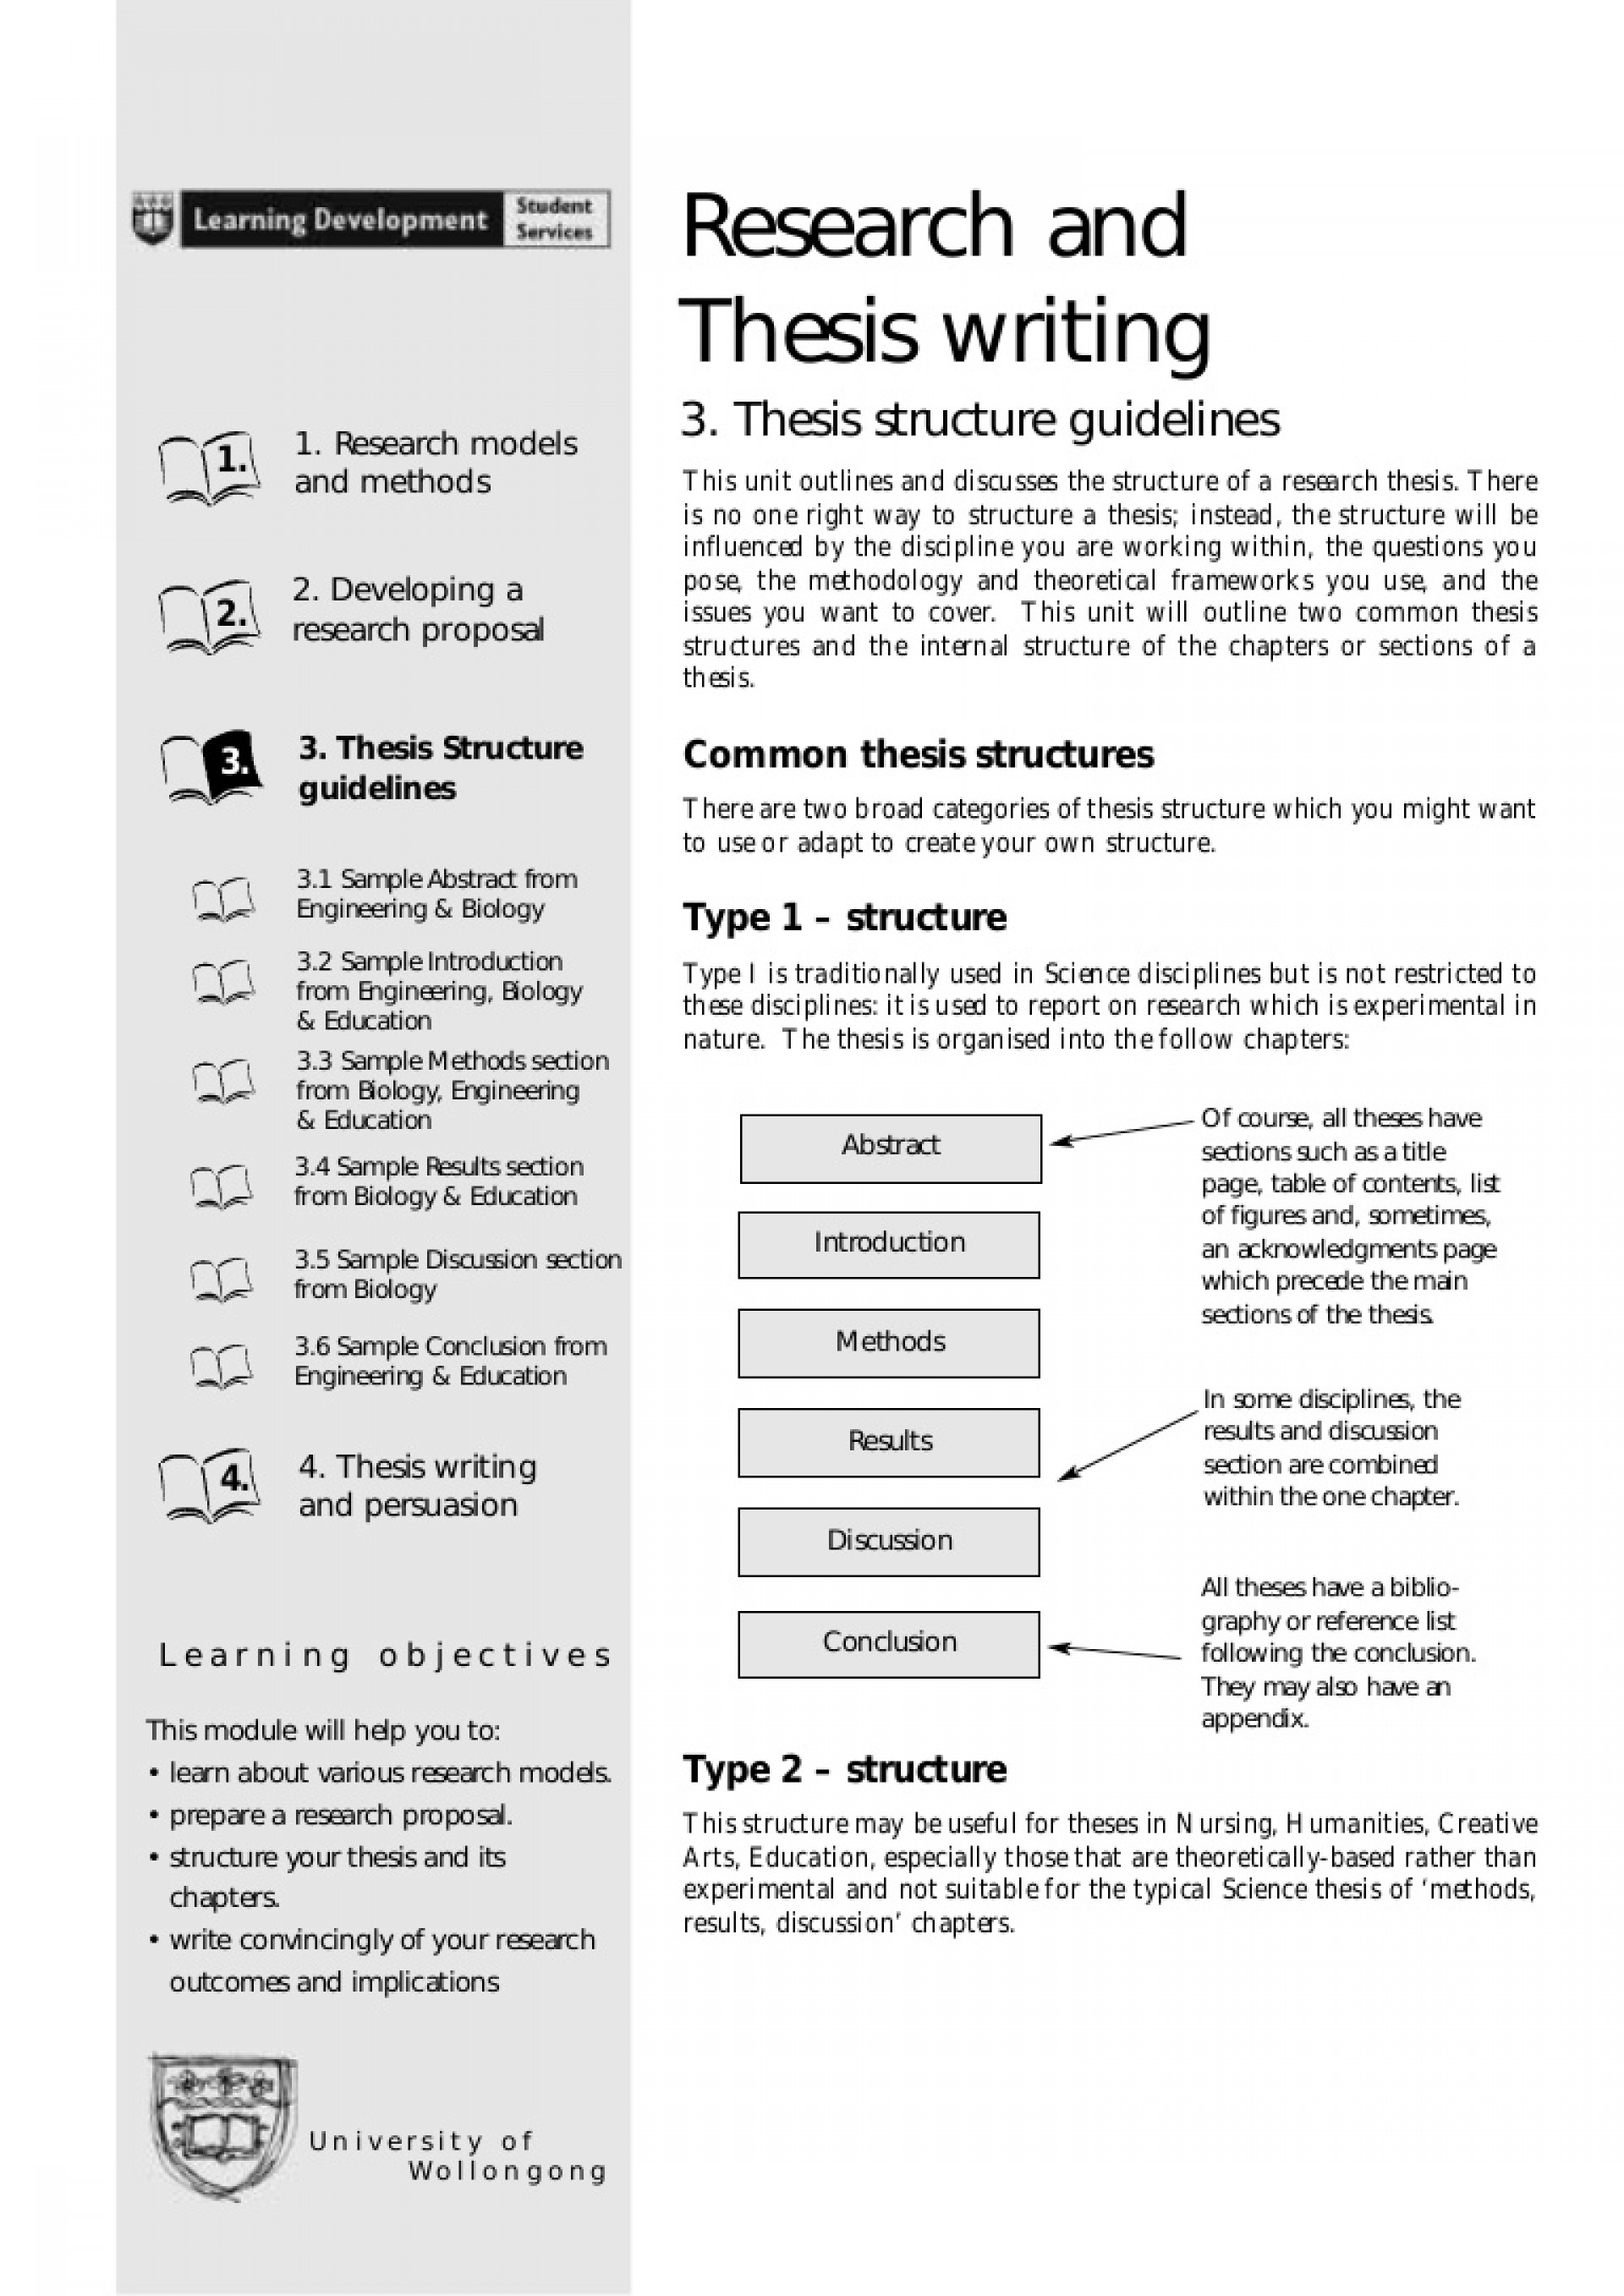 002 Research Paper Researchtheseswriting Phpapp01 Thumbnail Proposal For Fascinating Slideshare Writing A How To Write 1920